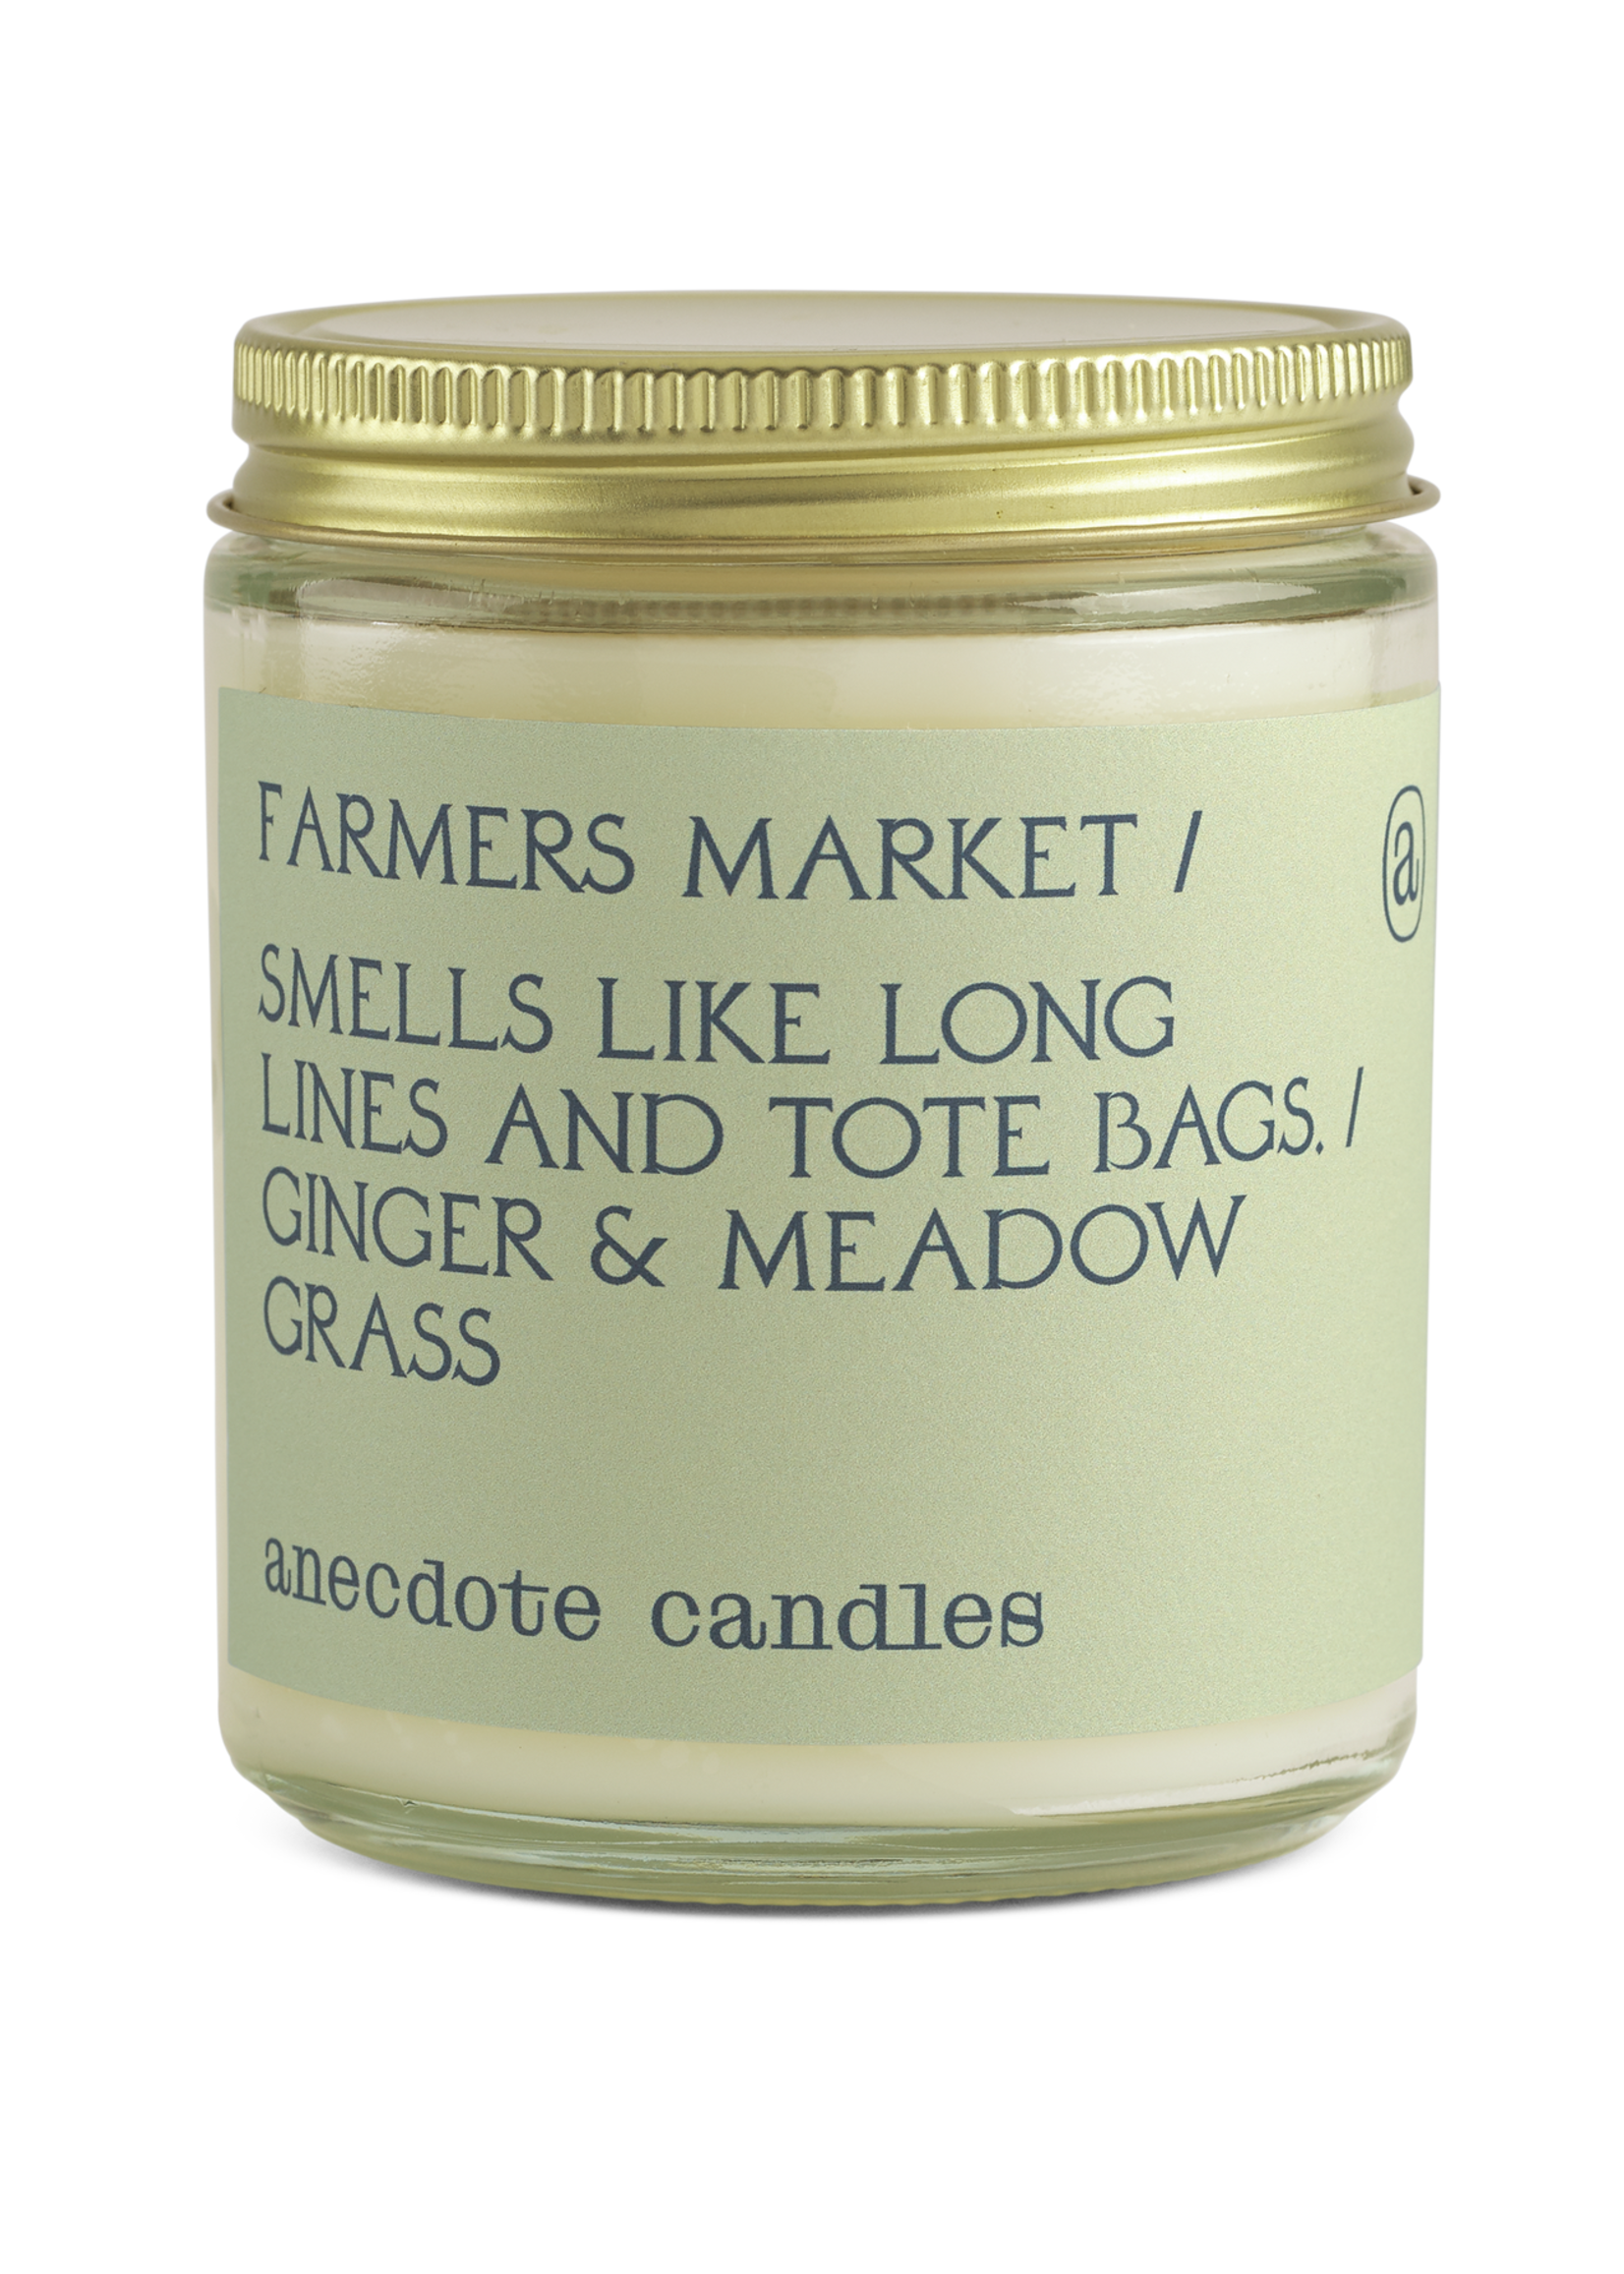 Farmers Market (Ginger & Meadow Grass) Glass Jar Candle